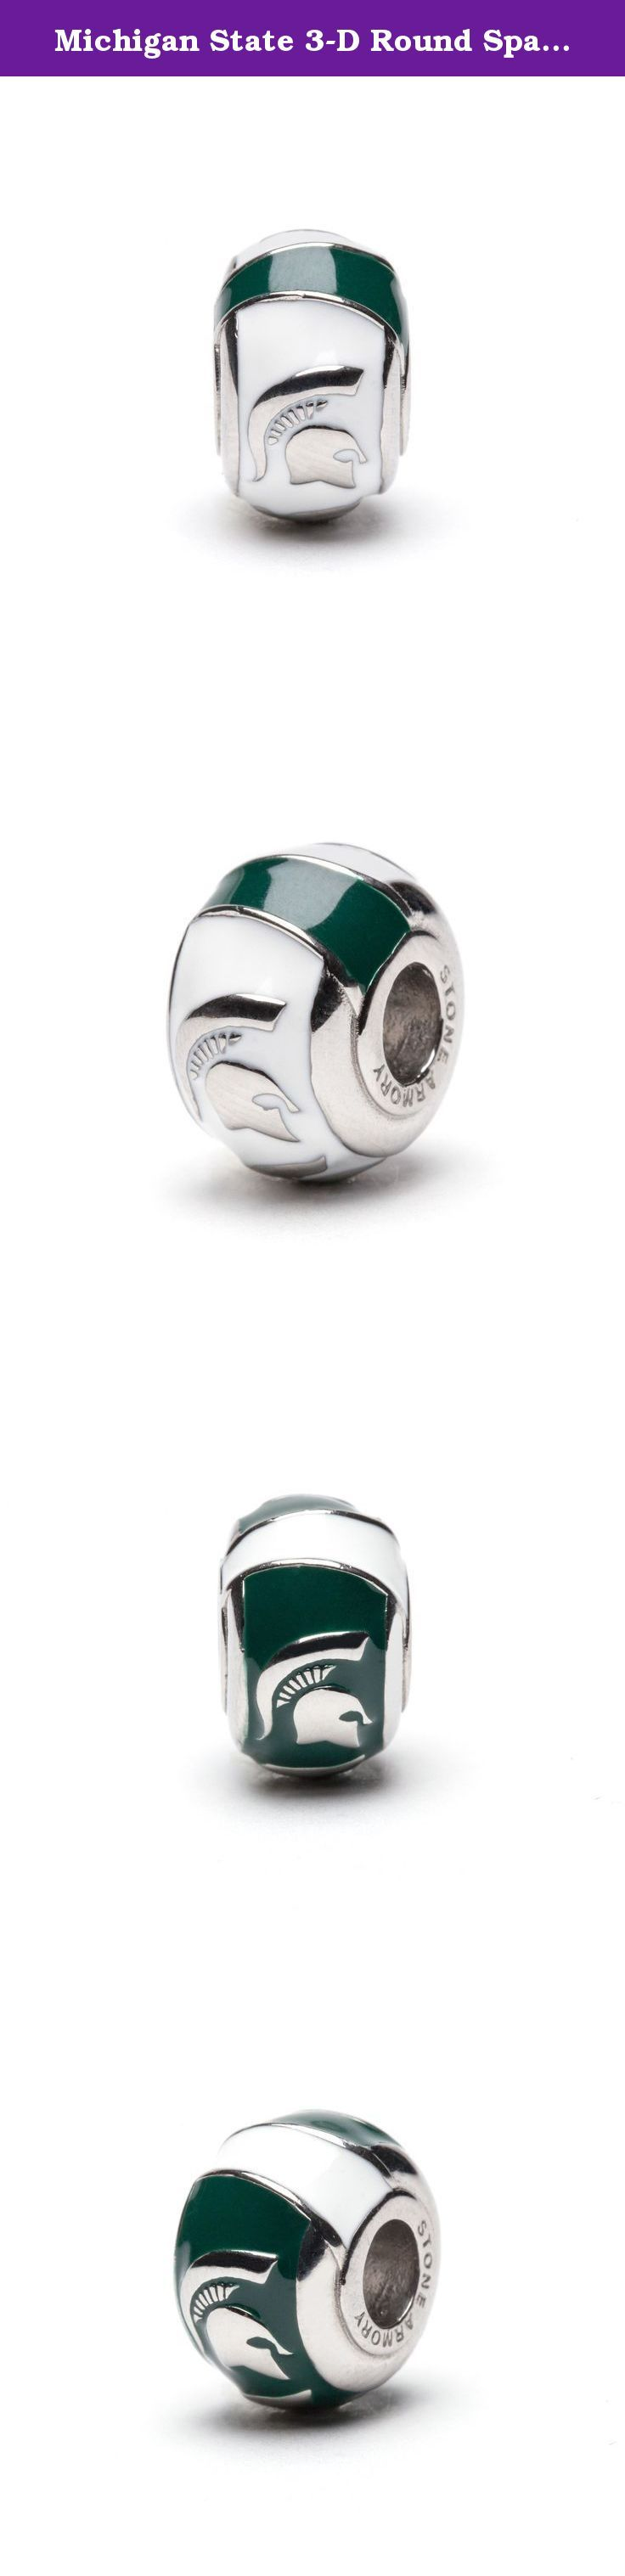 Michigan State 3-D Round Spartan Bead Charms - Set of 2 - Green & White - Fits Pandora & Others. These two Michigan State bead charms fits Pandora style bracelets and necklaces. It is handcrafted with care. Green with white stripes and 8 spartan heads. Share with a friend or keep them all for yourself! Get creative designing your very own, unique Michigan State jewelry pieces! Makes the perfect graduation or Christmas gift.